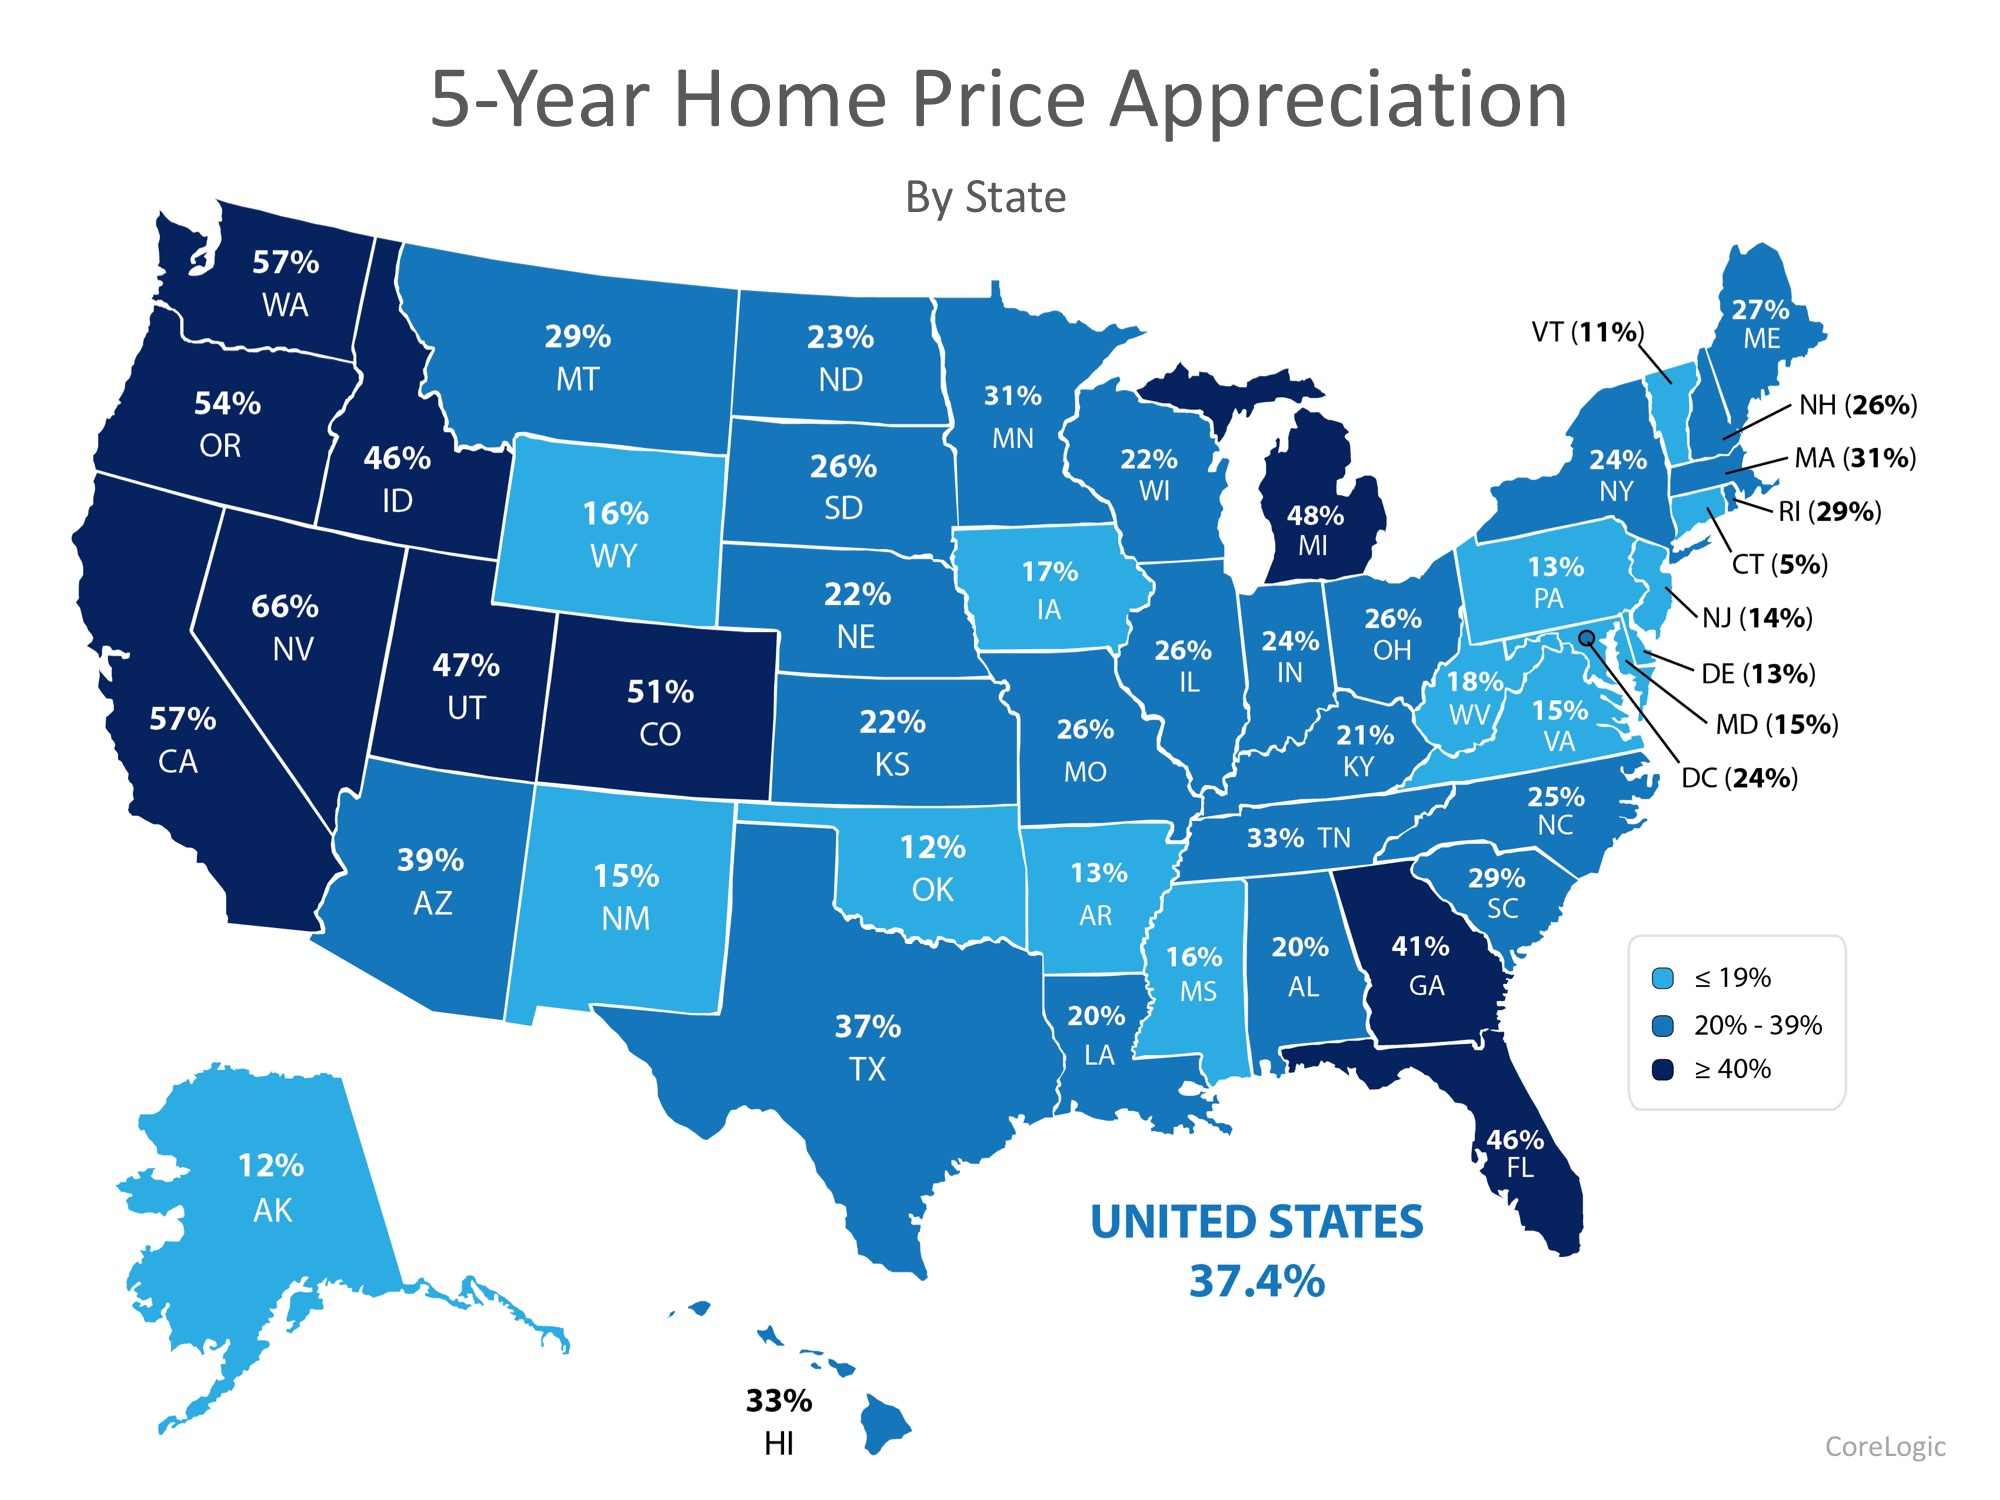 5-year home appreciation